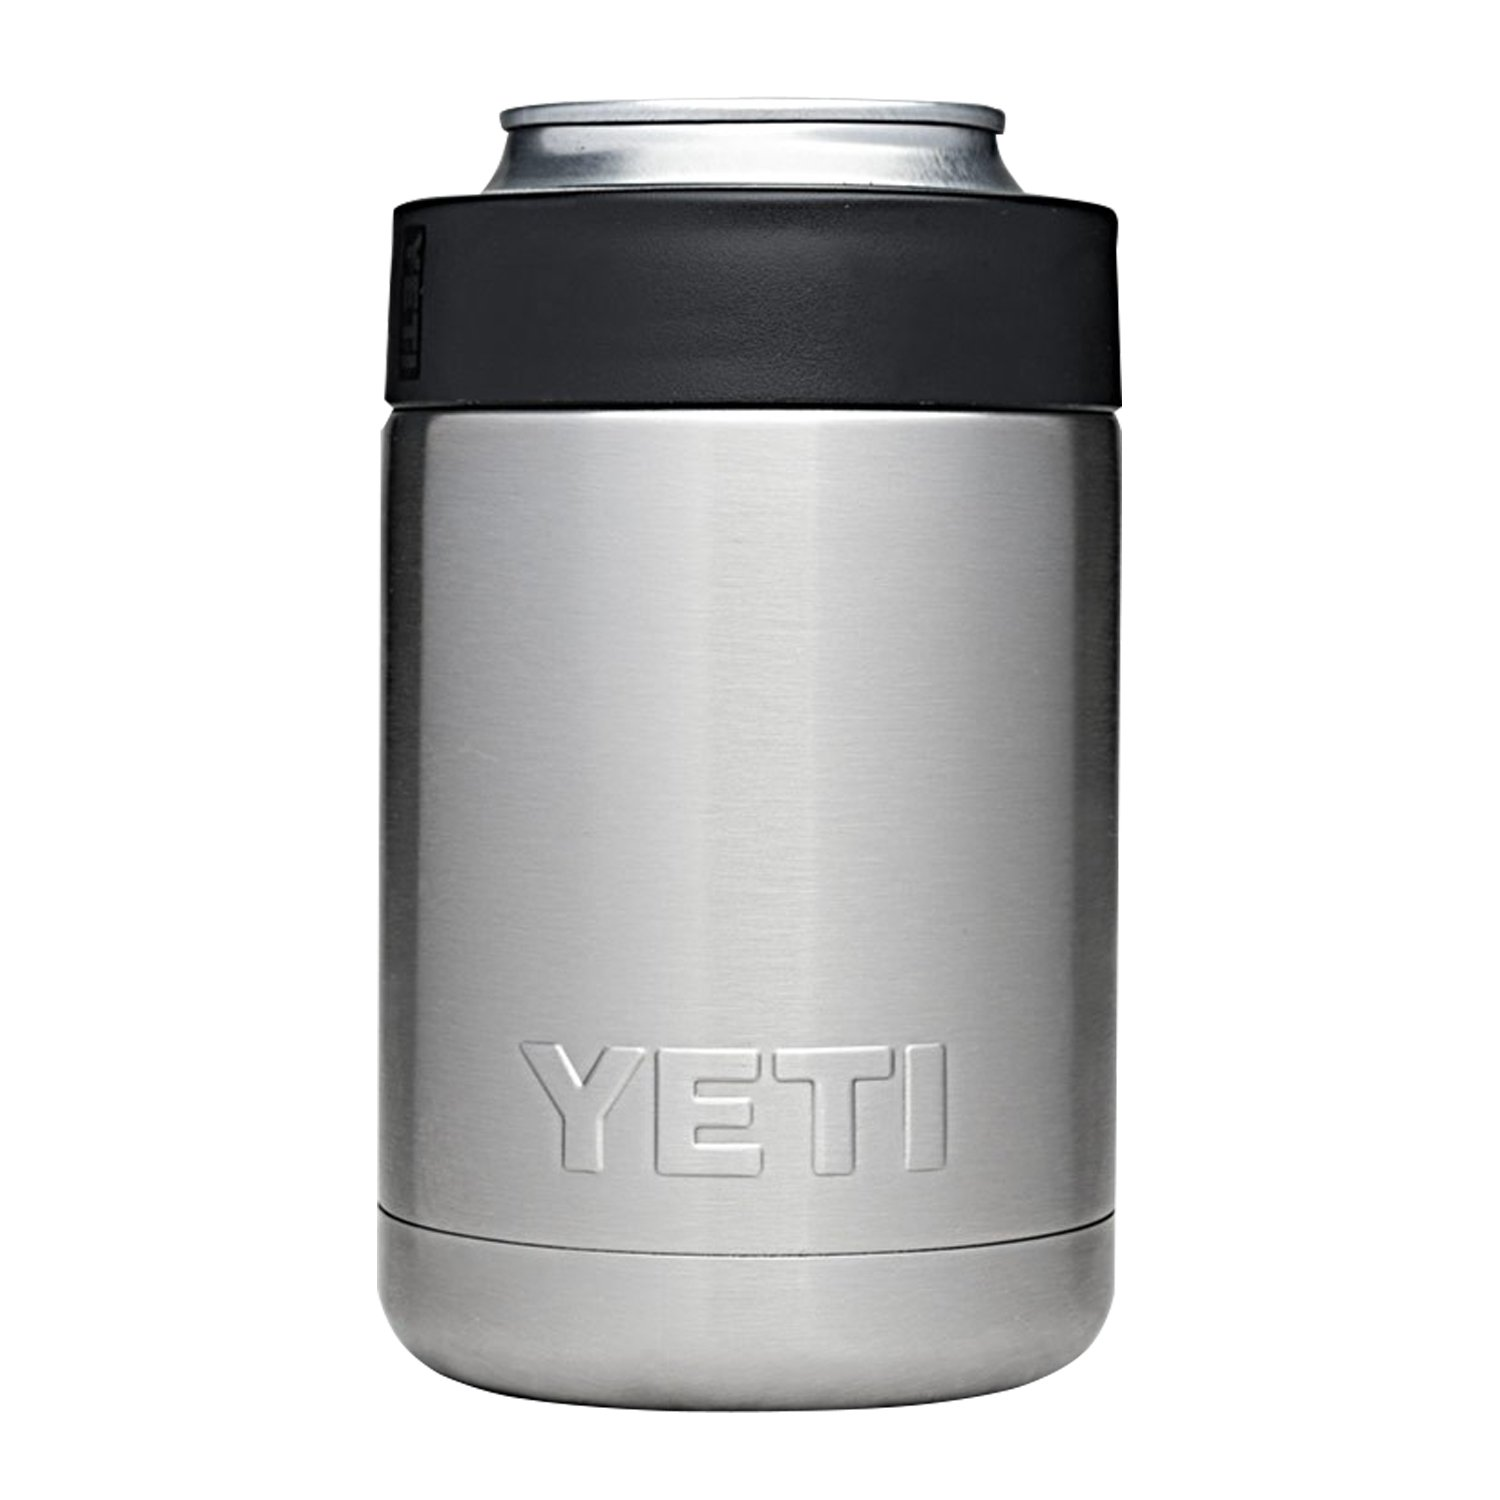 a611275f895 Amazon.com: YETI Rambler Colster Can and Bottle Holder Silver One Size:  Sports & Outdoors